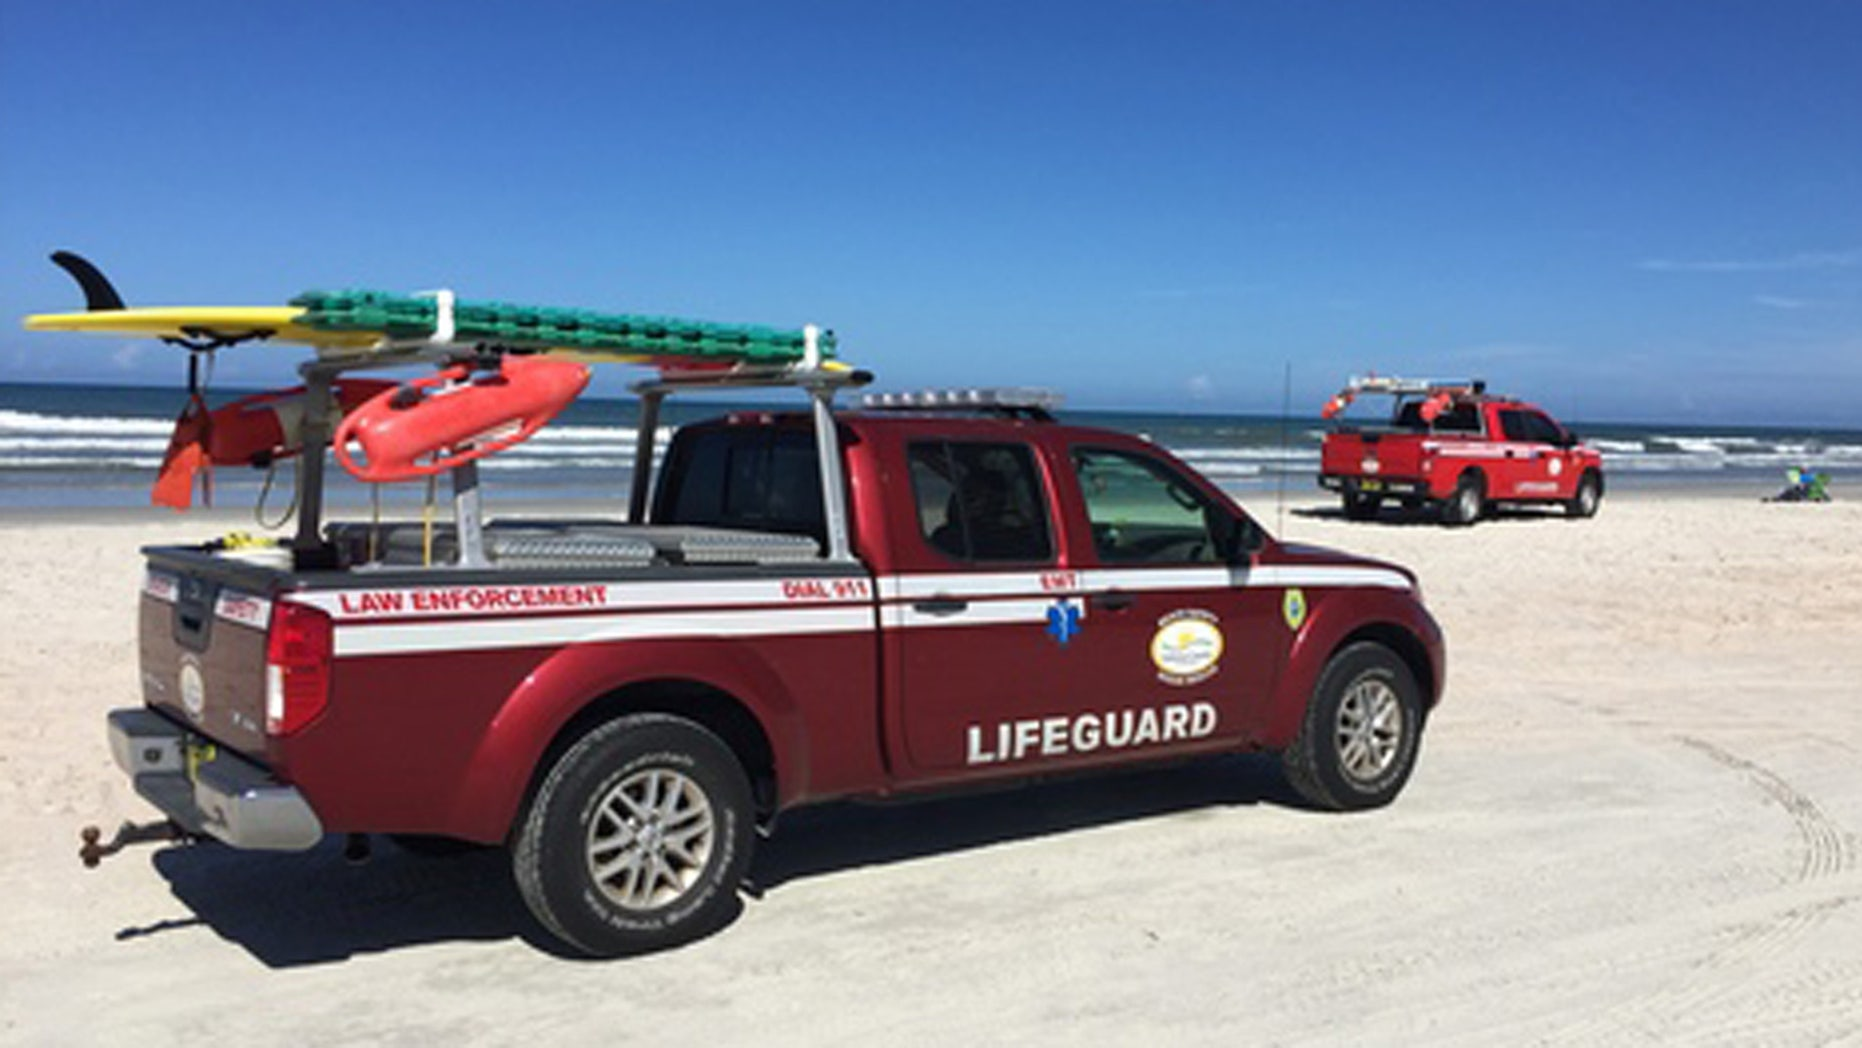 A 4-year-old boy was hit by a truck on a Florida beach after he rode a wave too close to a traffic lane.